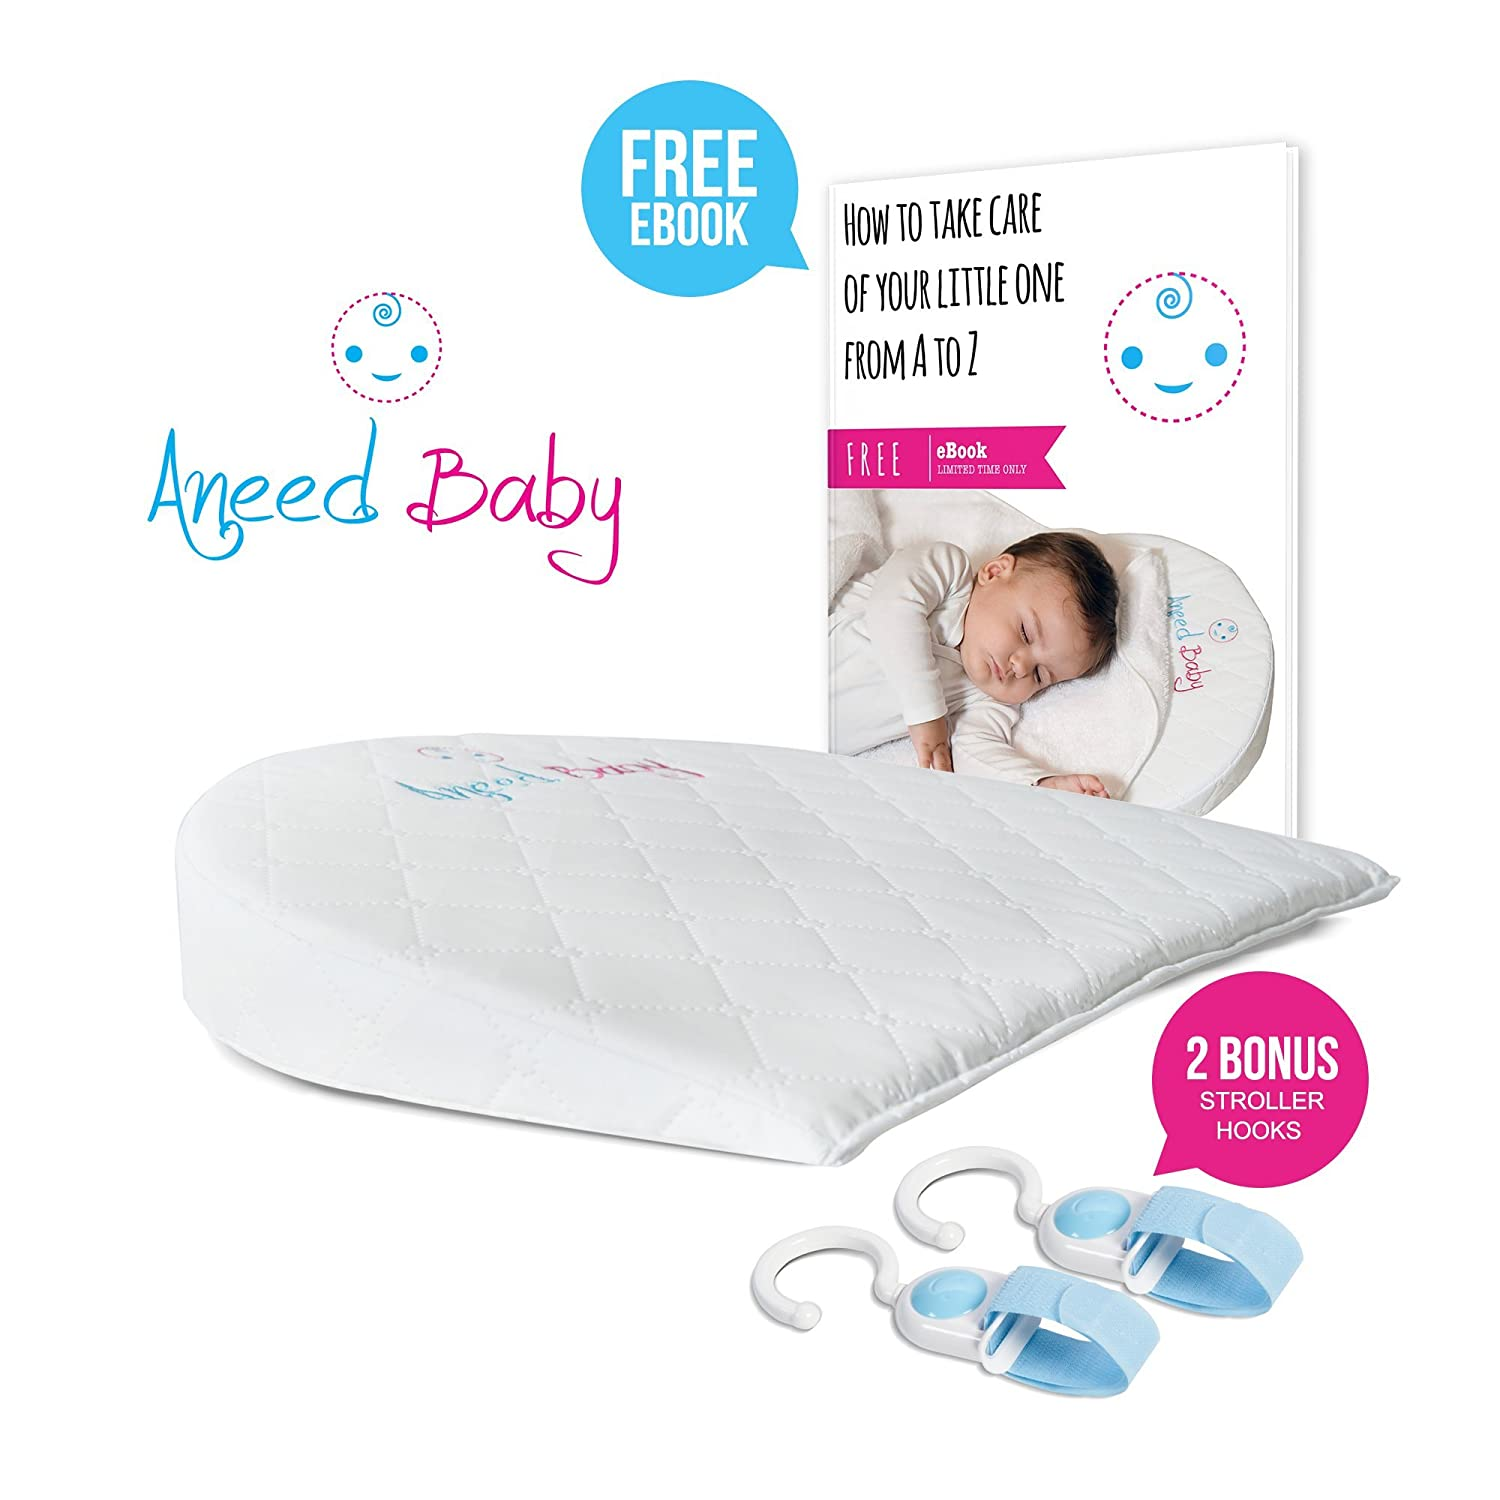 Bassinet Wedge - Crib Wedge for Baby Reflux - Infant Pillow with Waterproof Cover - Baby Pillow for Newborn Reflux and Nasal Congestion Reducer - Hypoallergenic Baby Wedge - Incline Crib Pillow Aneed Baby